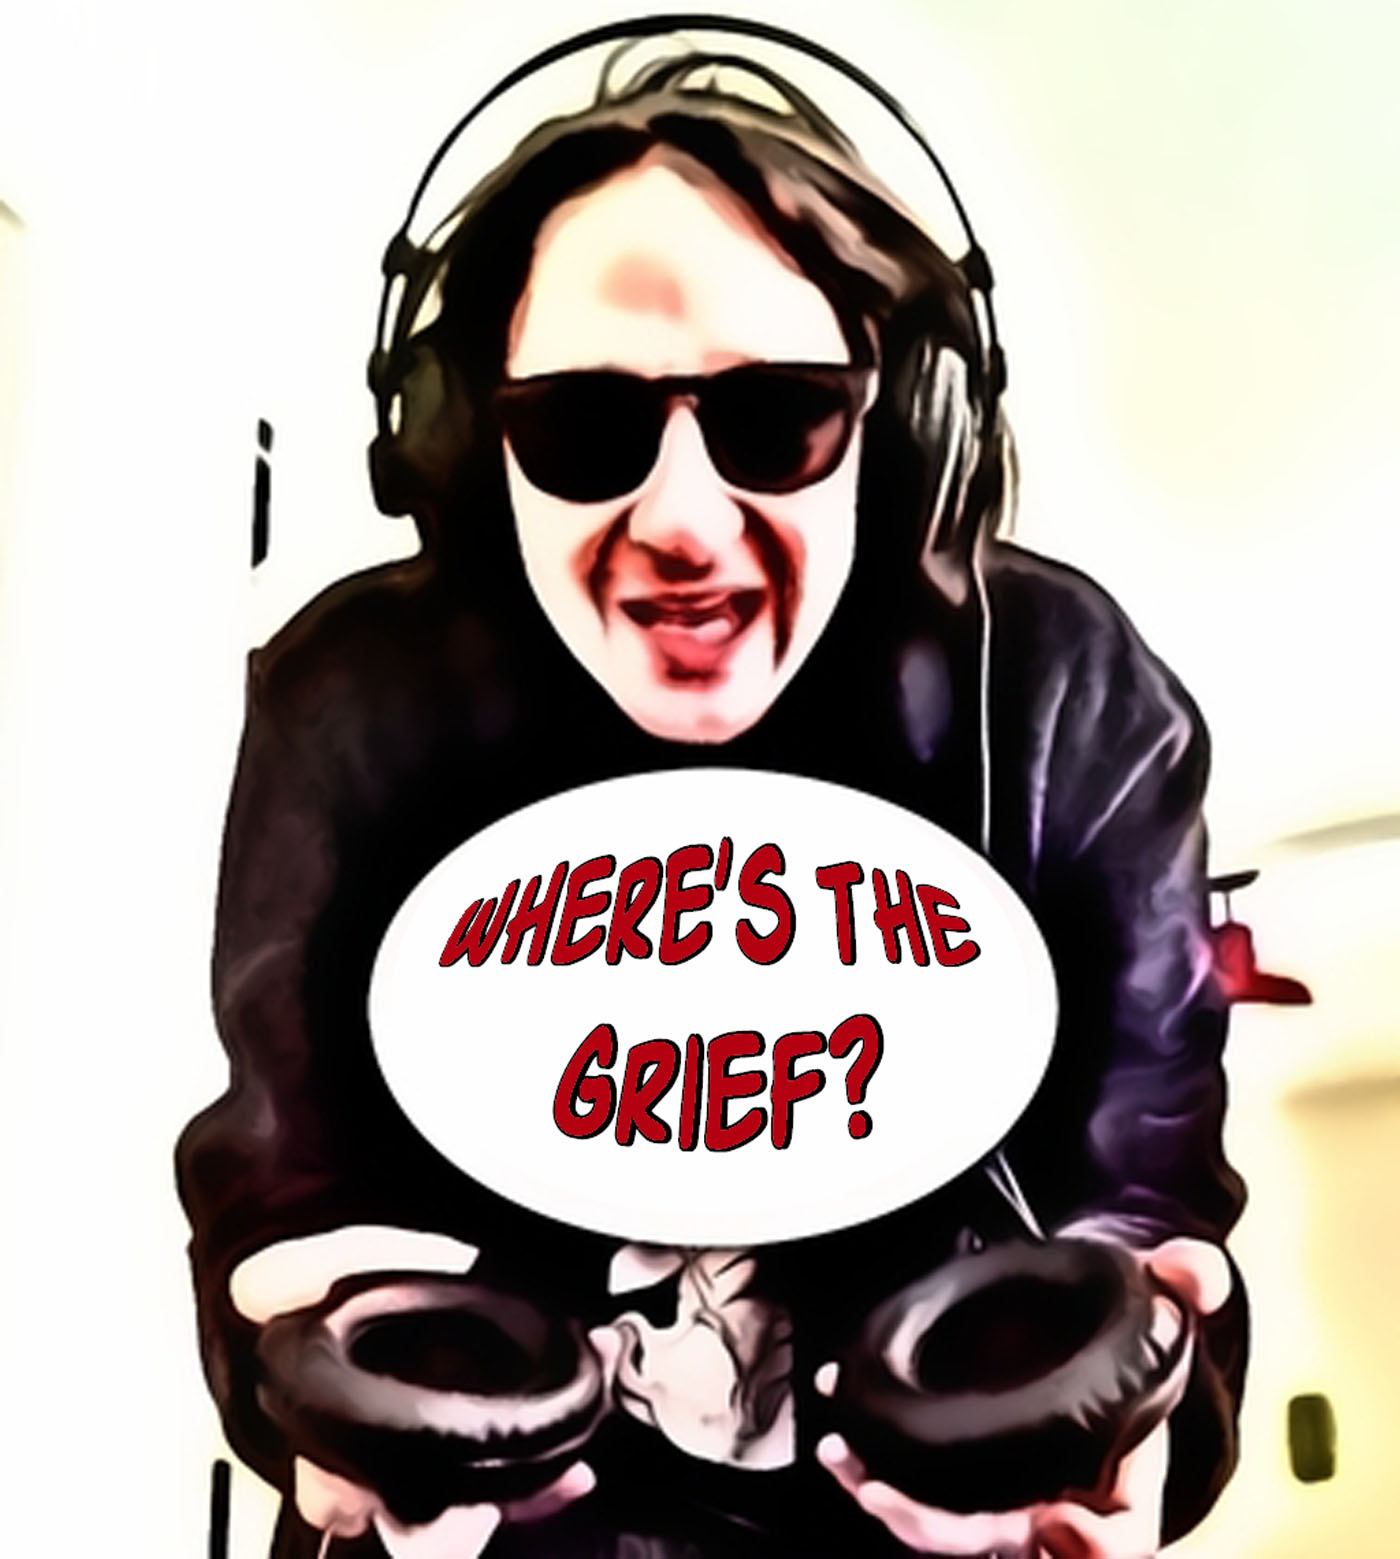 Where's The Grief?